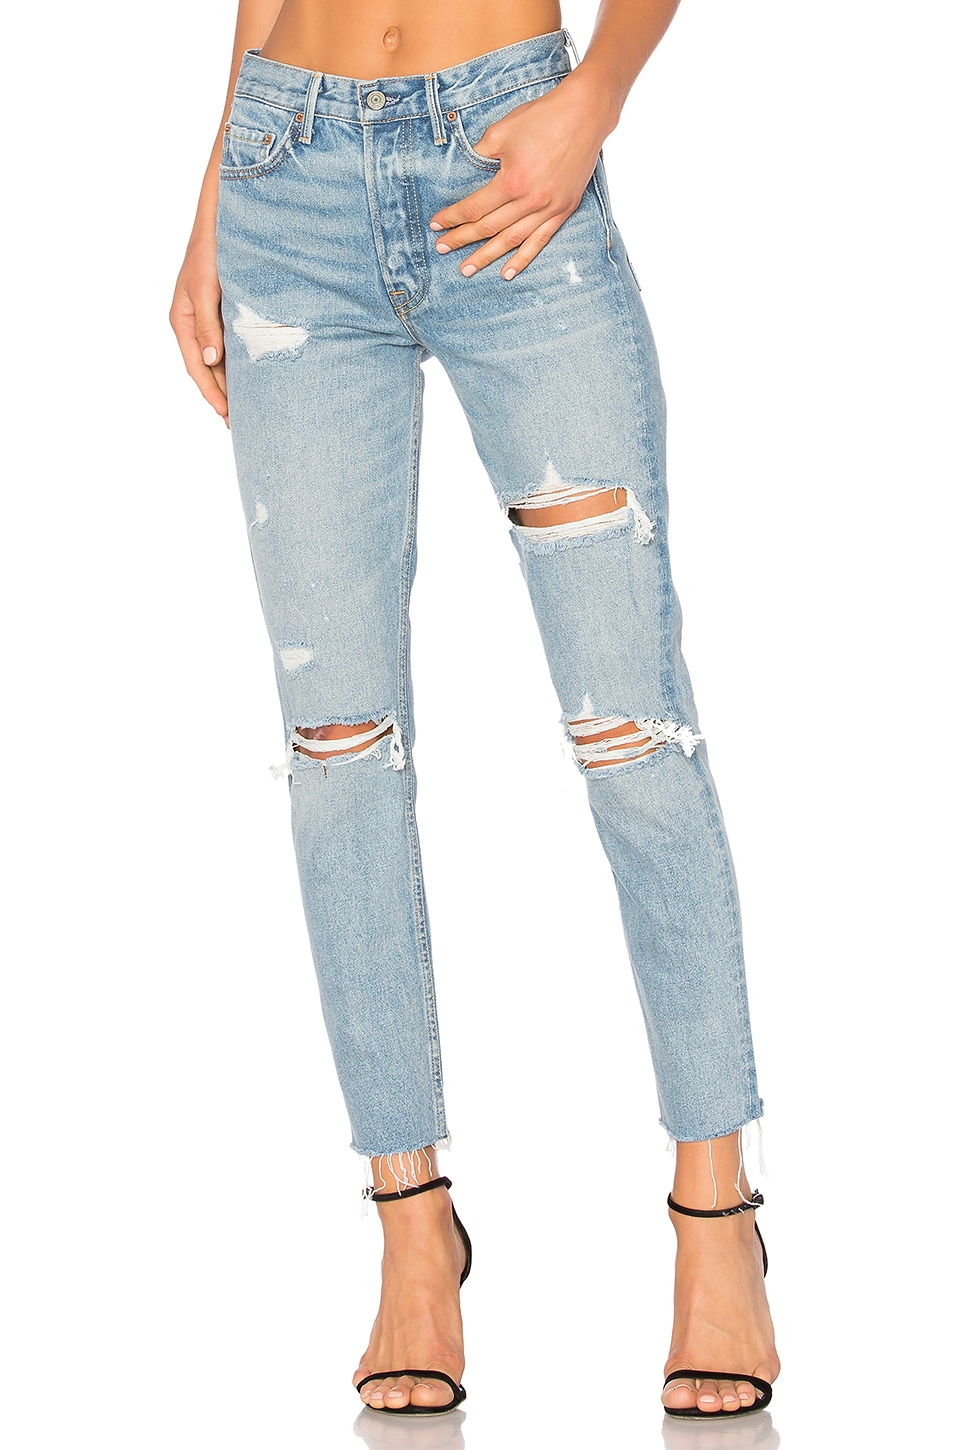 GRLFRND Karolina High-Rise Skinny Jean in A Little More Love